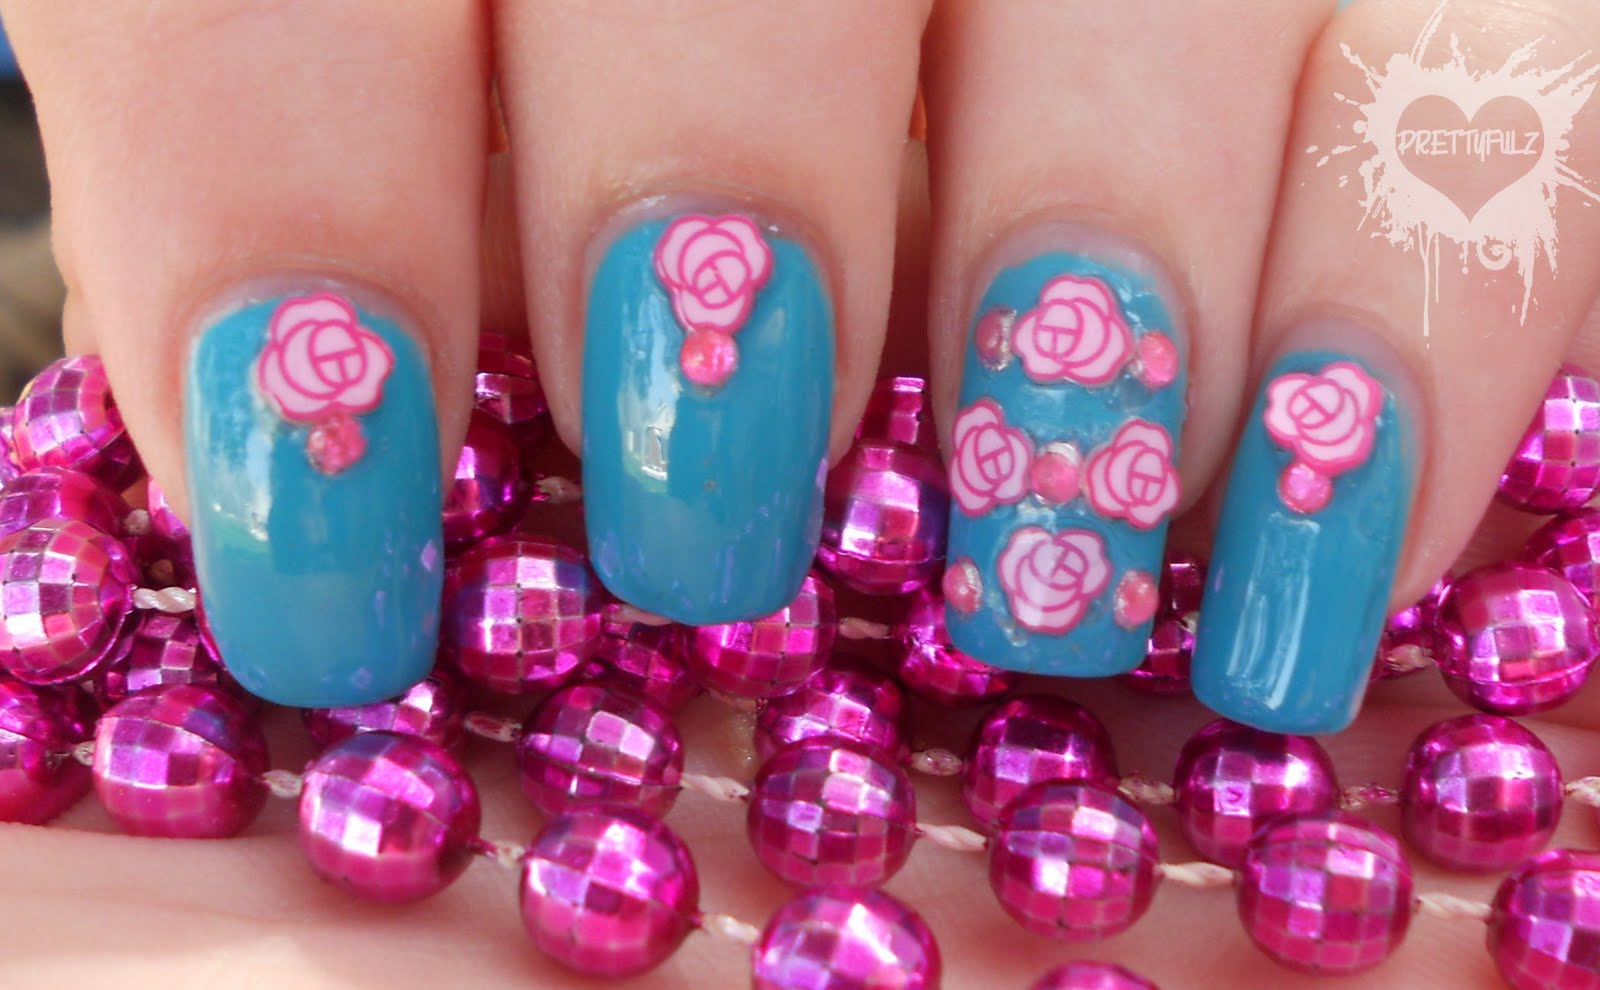 Prettyfulz: Pretty Pink & Teal Flower Nail Art Design